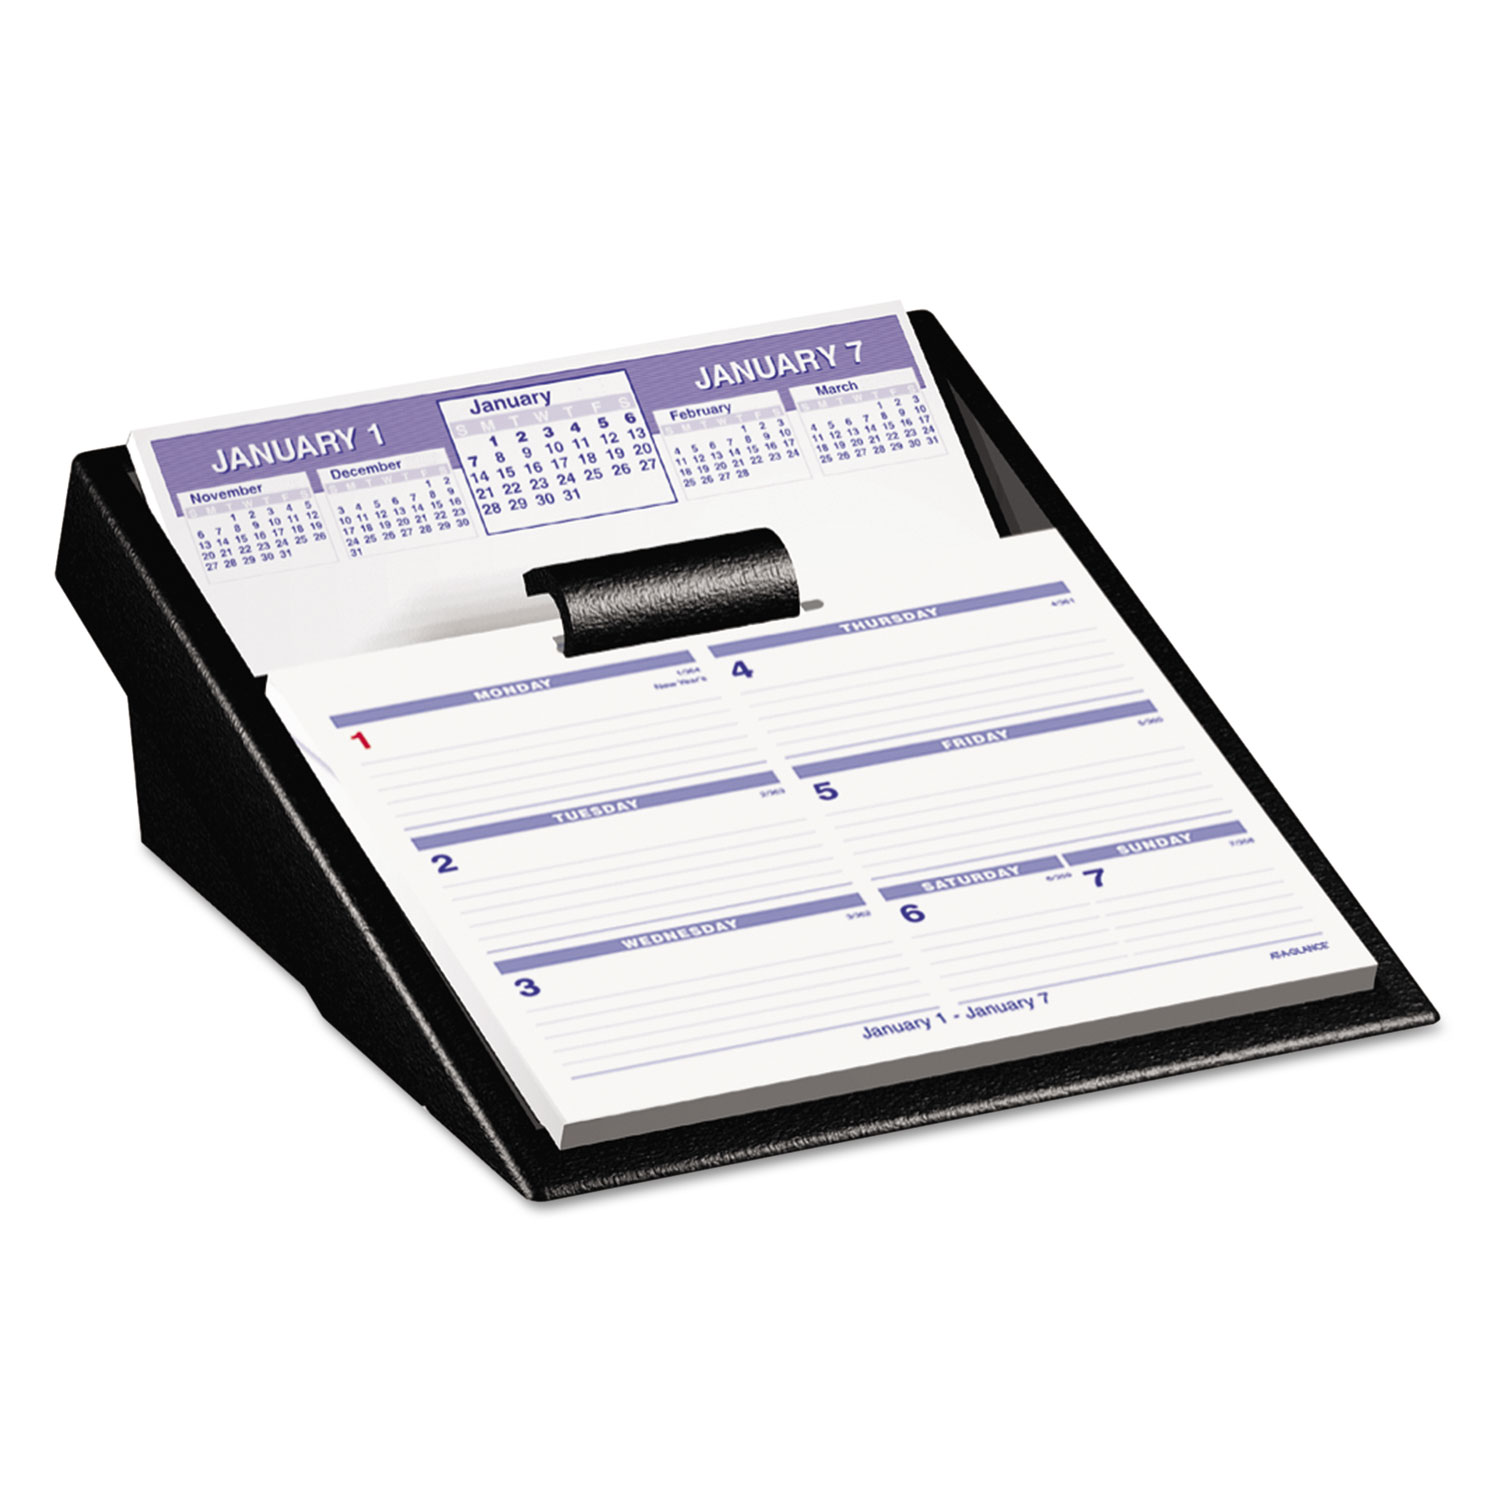 Flip A Week Desk Calendar And Base By At A Glance